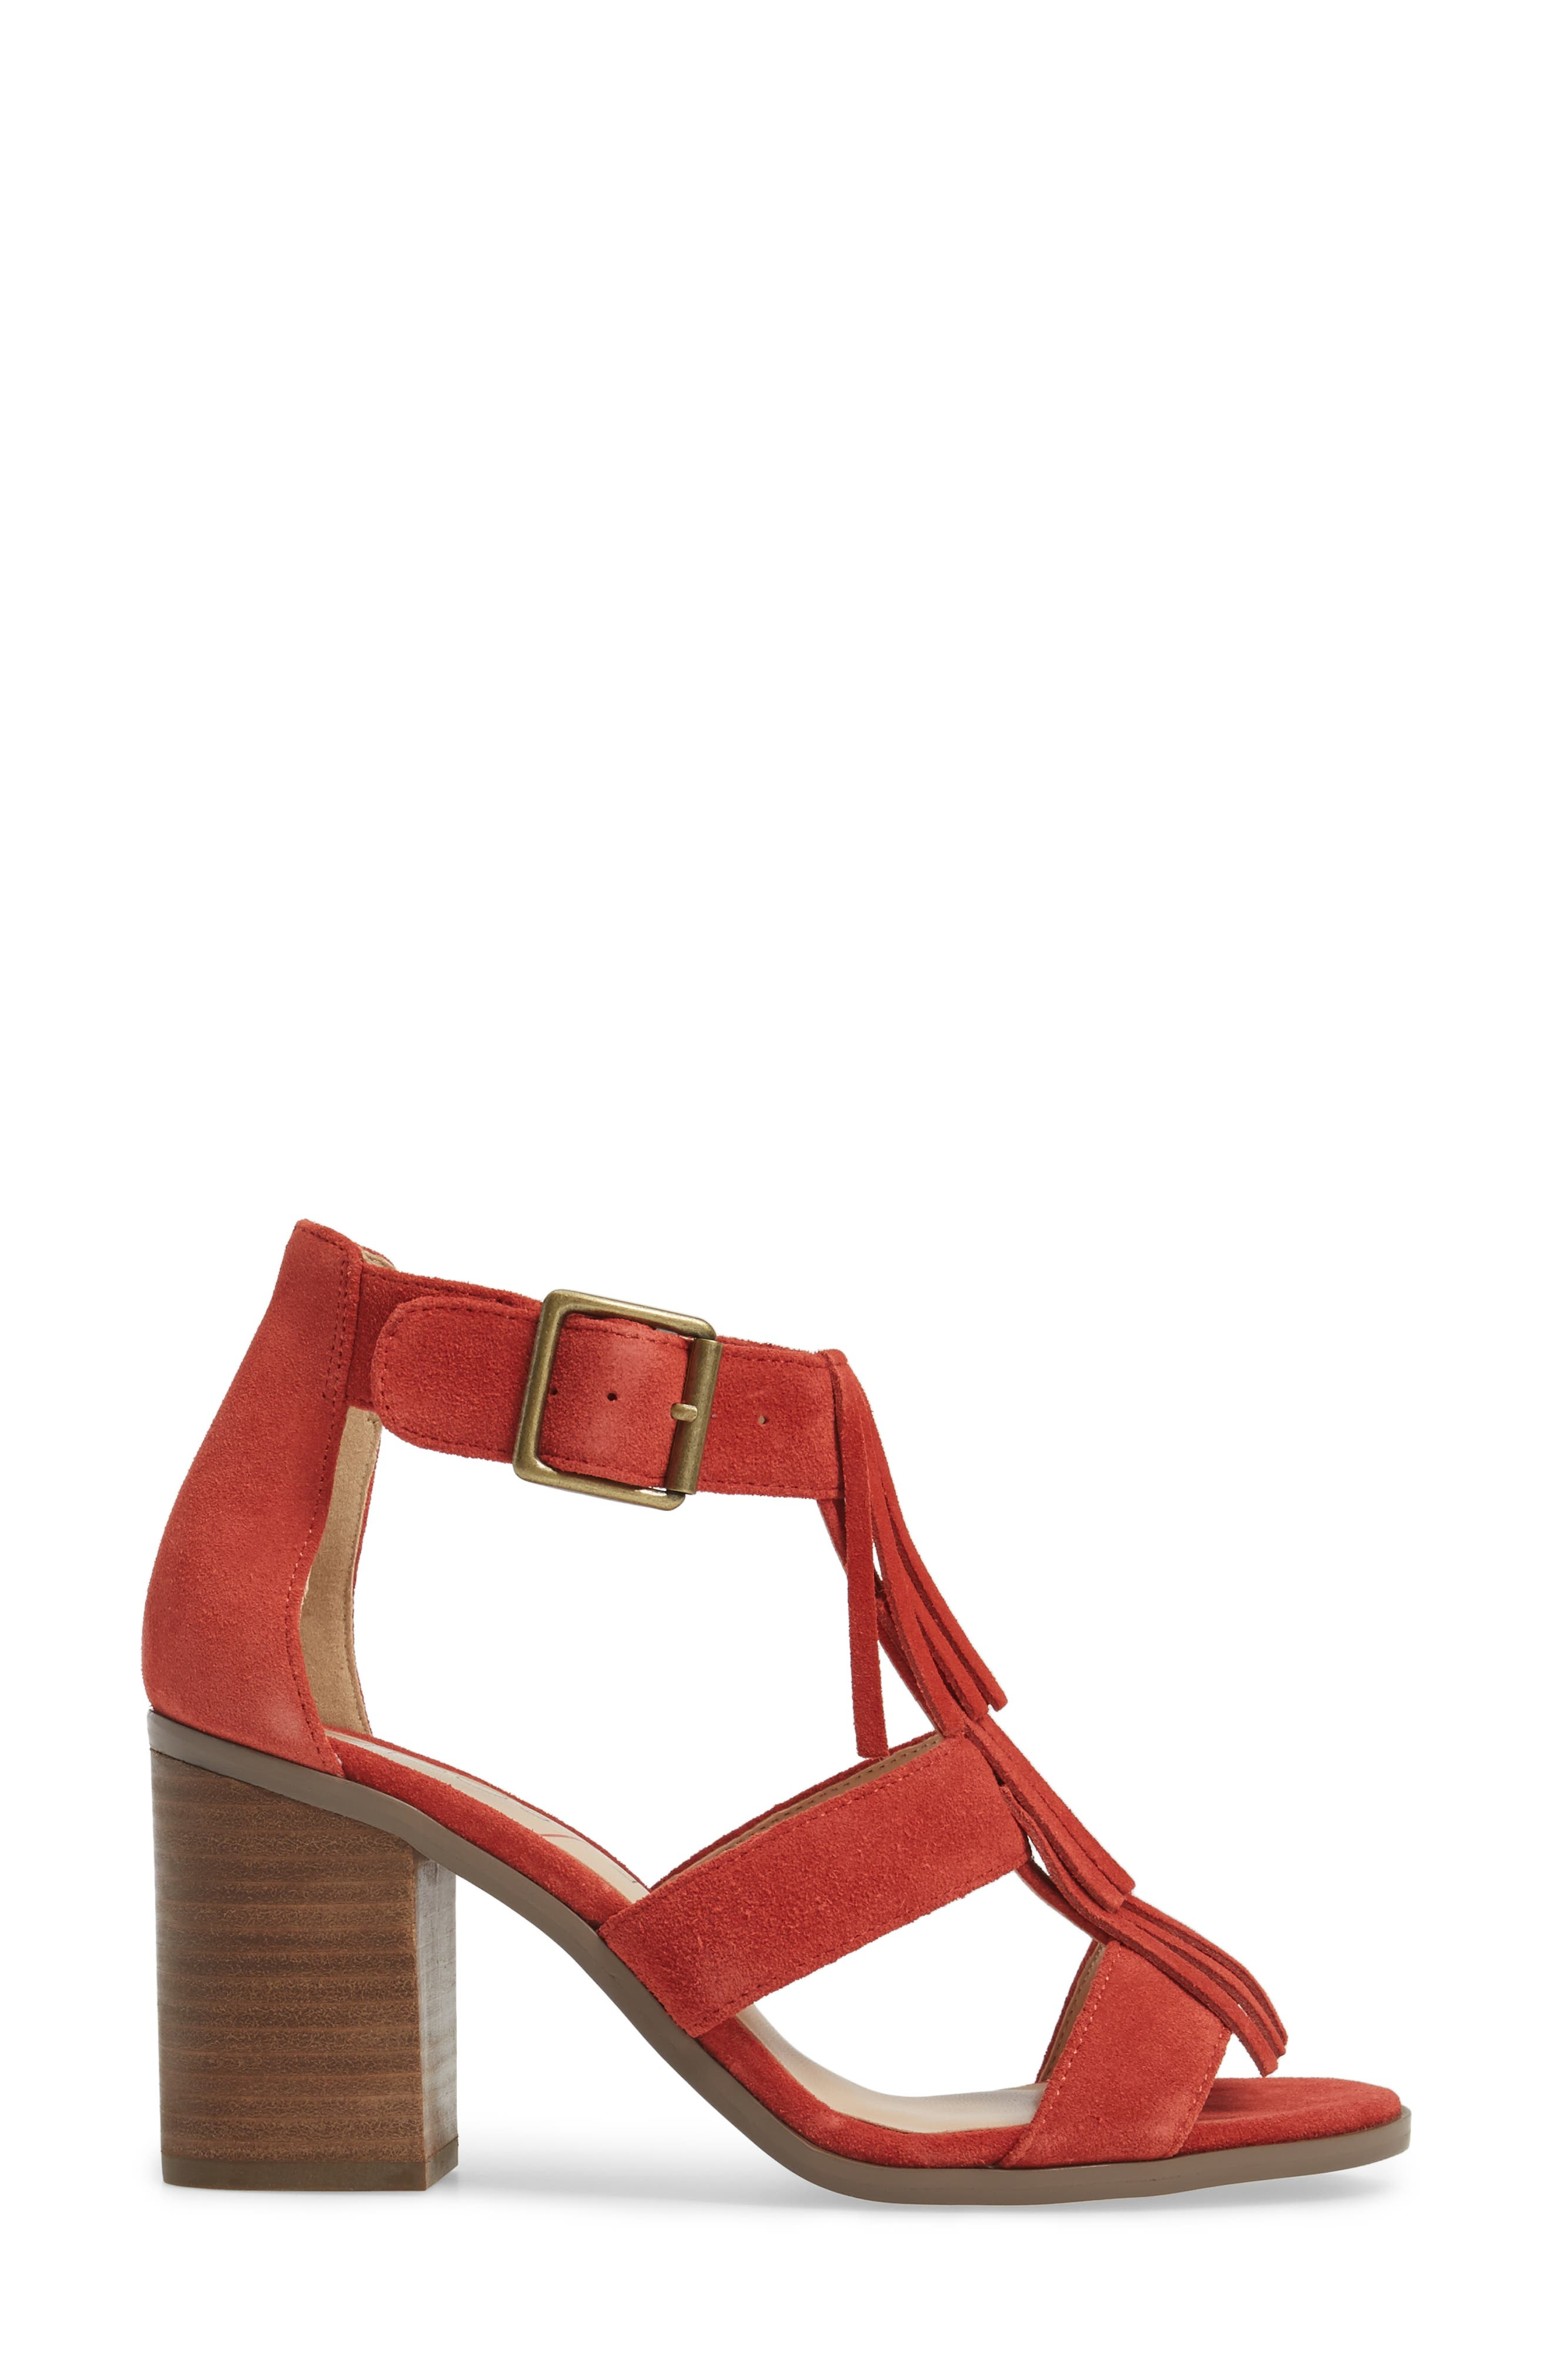 'Delilah' Fringe Sandal,                             Alternate thumbnail 18, color,